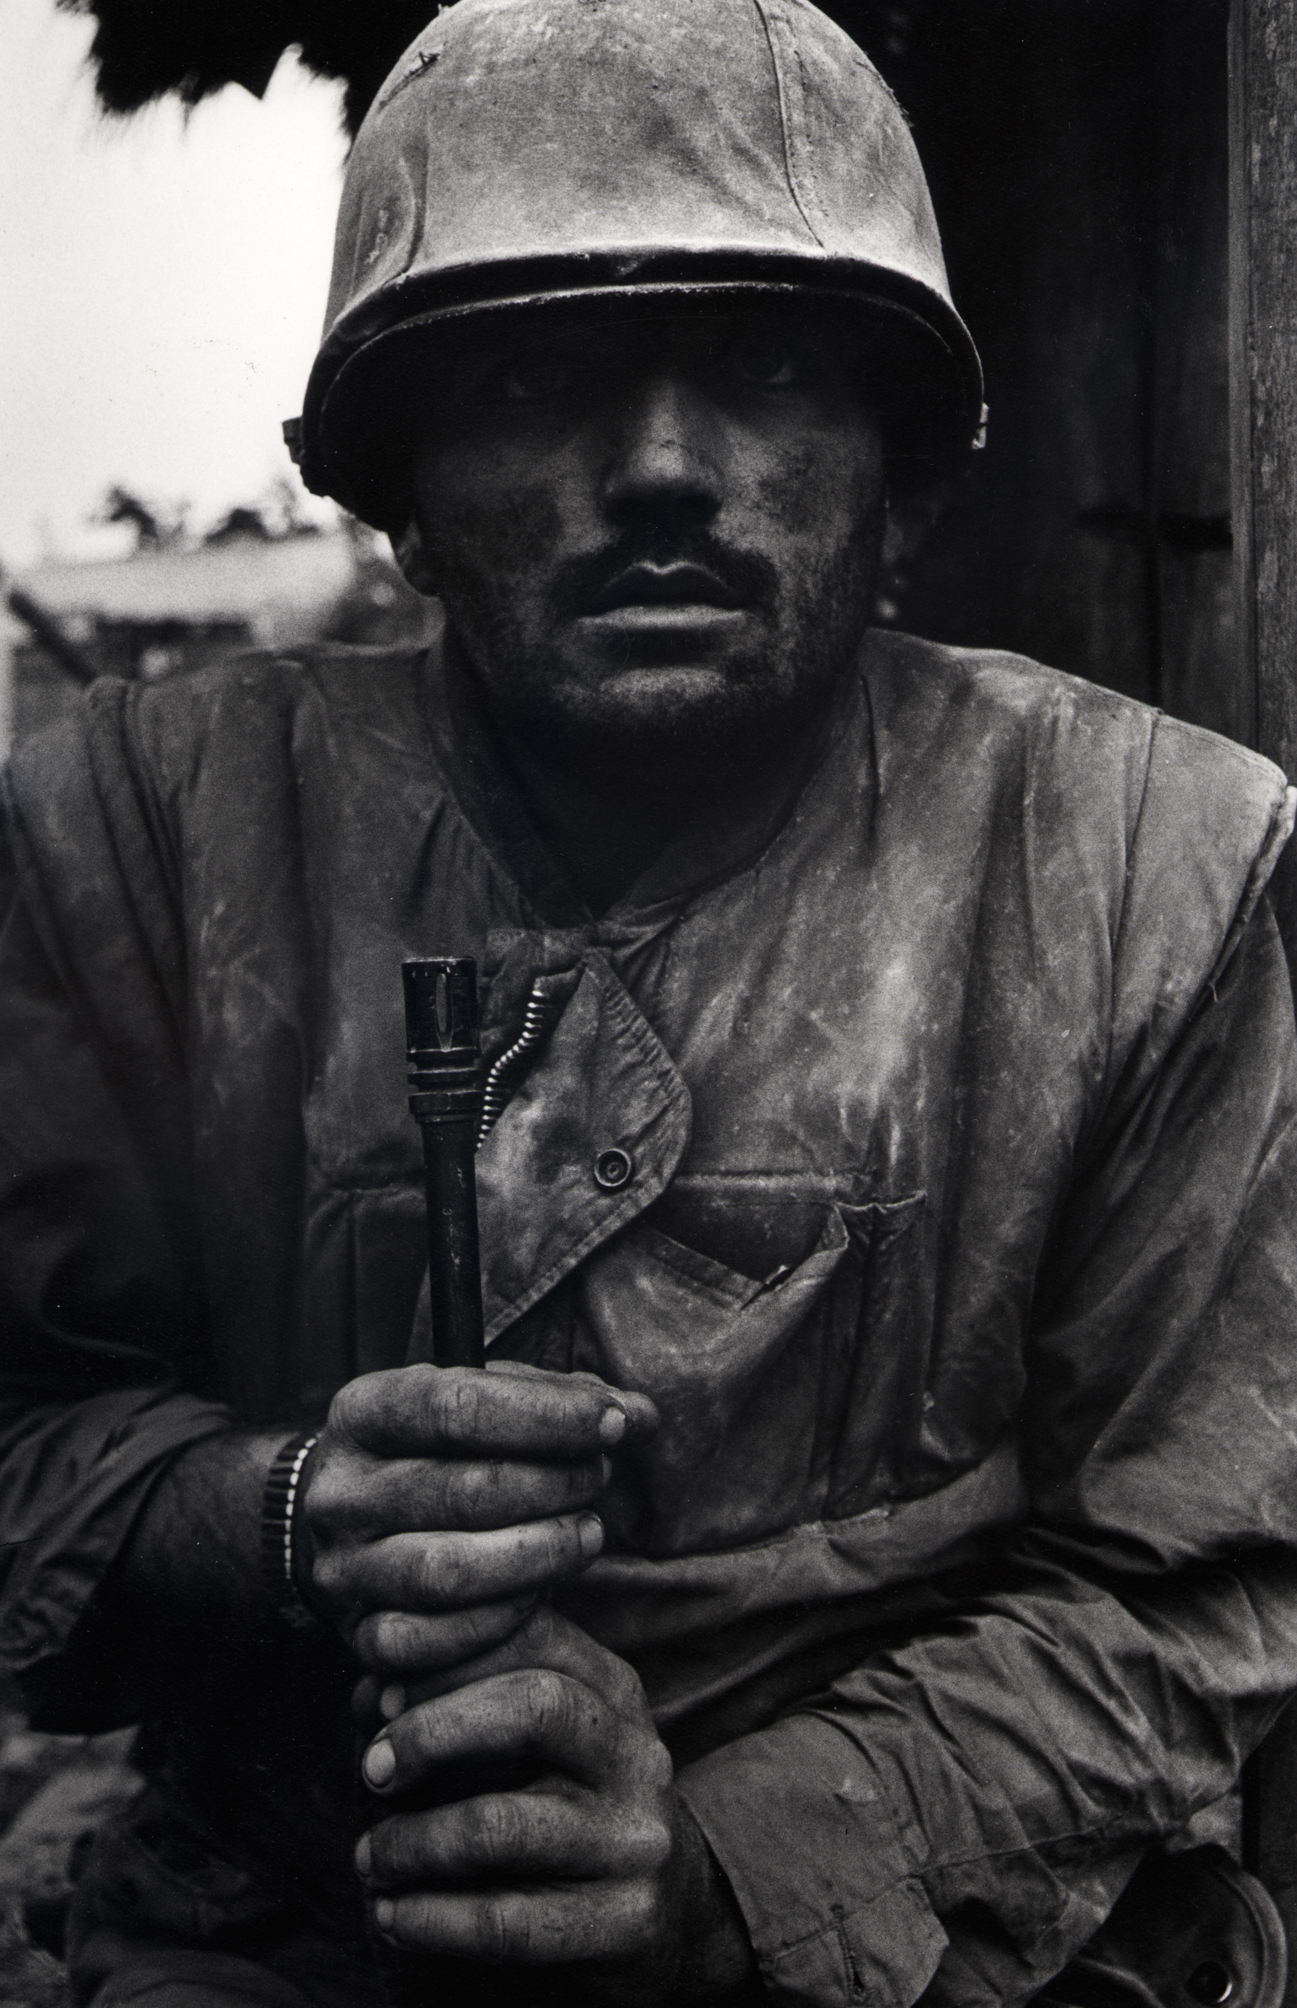 Don McCullin, Shell Shocked US Marine, Vietnam, Hue, printed 2013 © Don McCullin